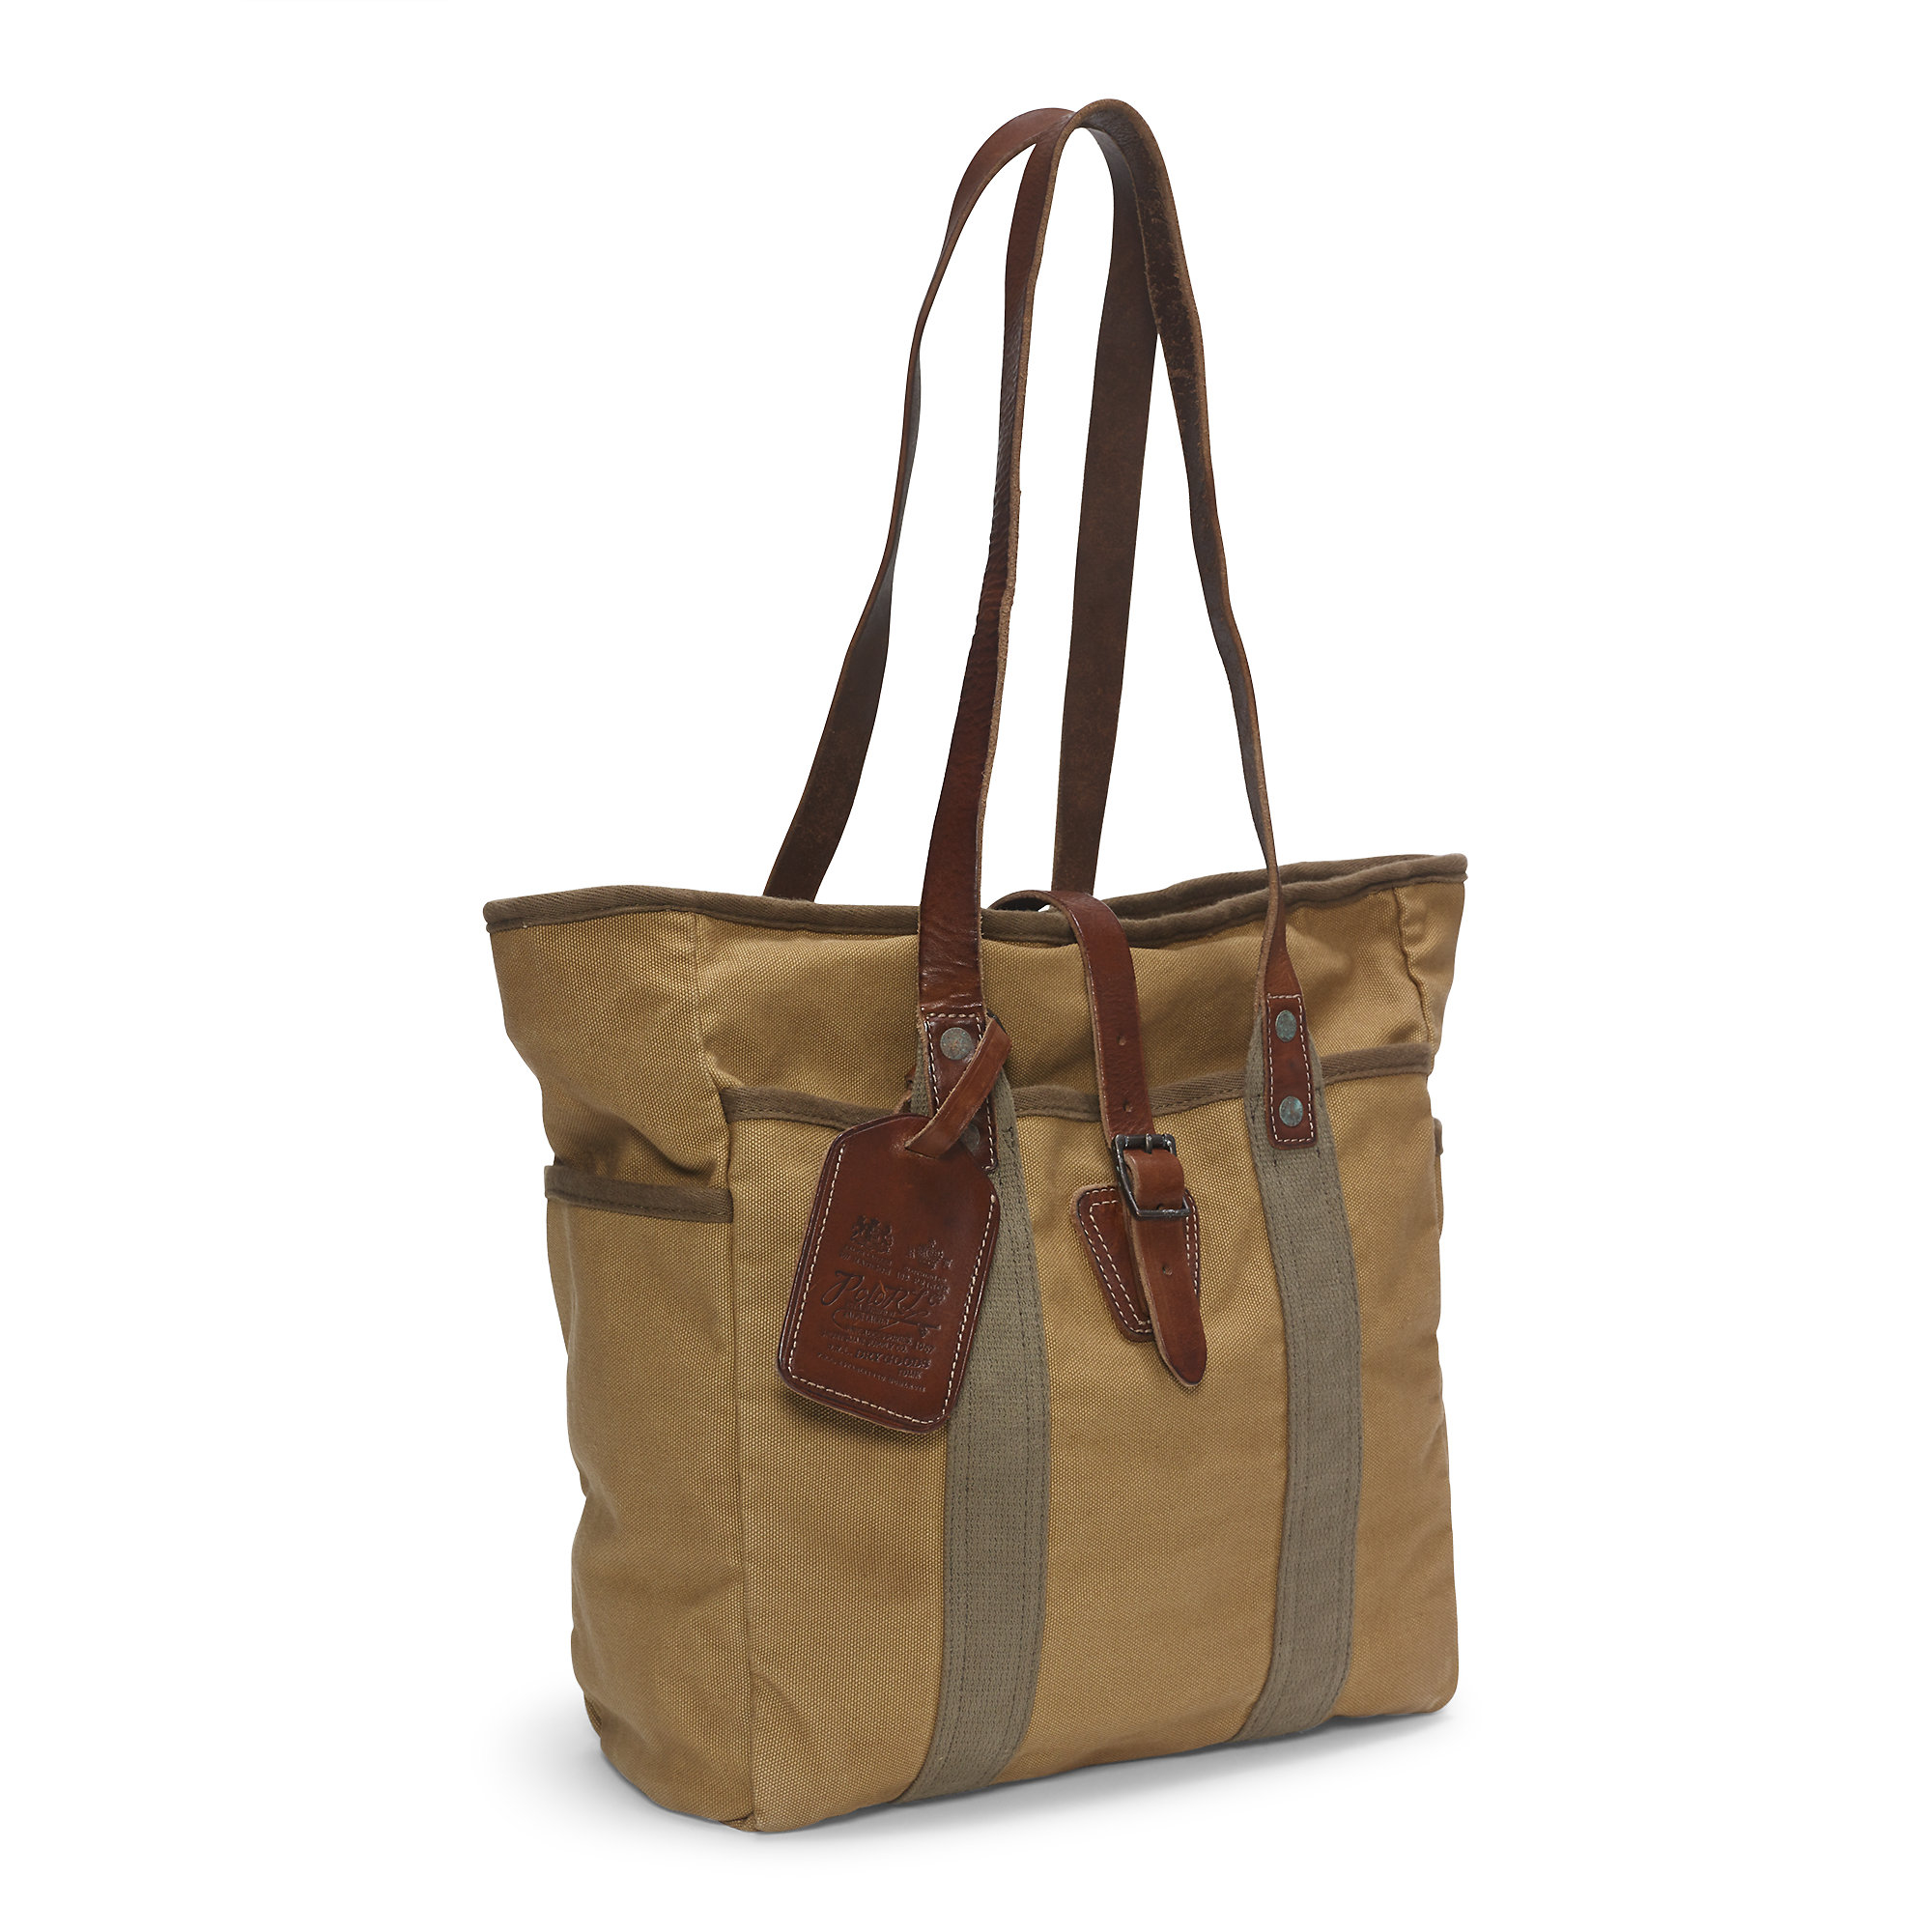 Lyst - Polo Ralph Lauren Adirondack Canvas Tote in Natural for Men ac0b895ac8ce9